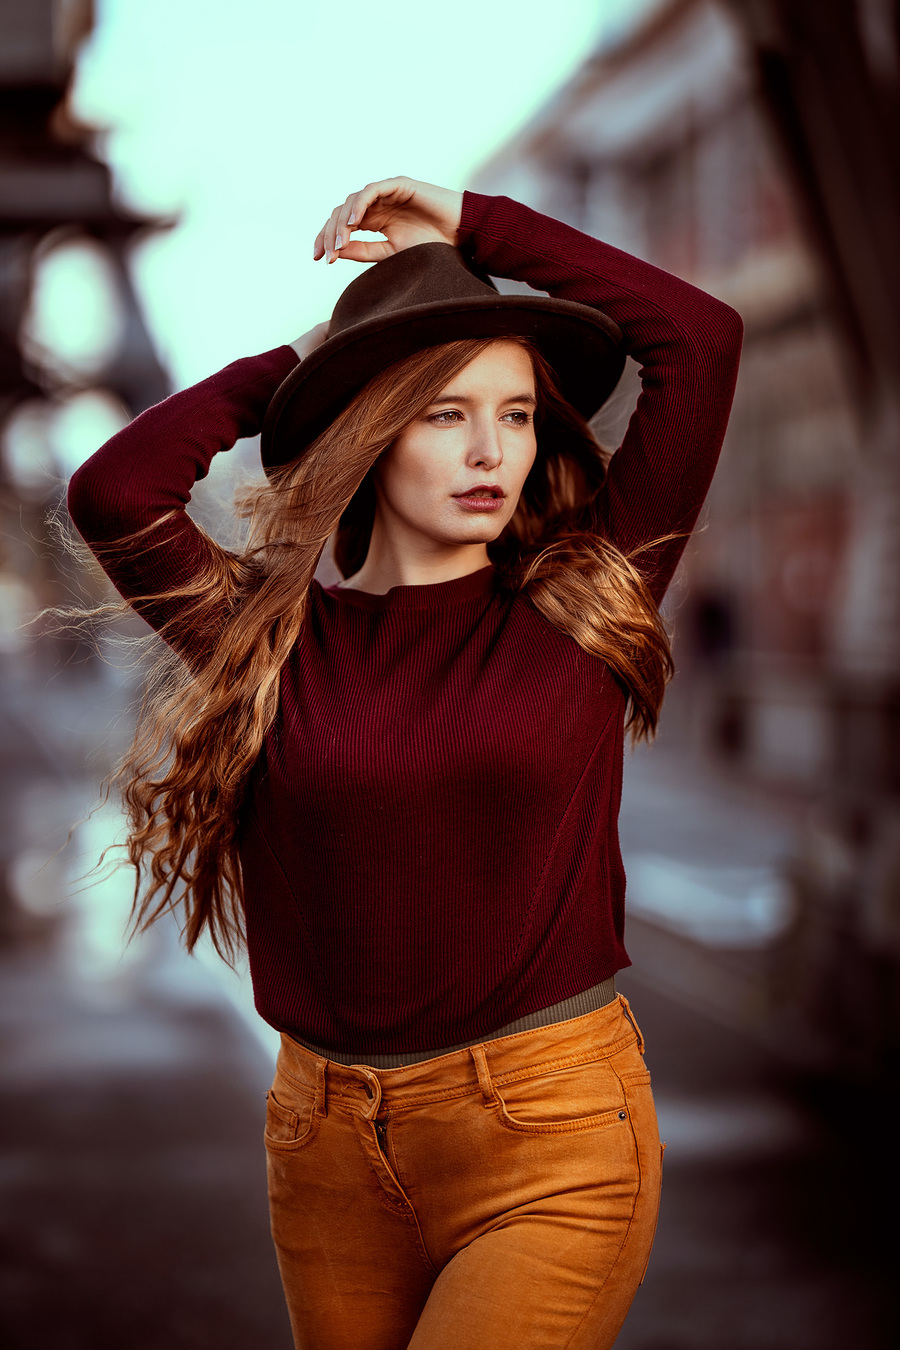 """""""Fell in love with a country girl, morning sunshine"""" / Photography by Raj K, Model Jade Lyon / Uploaded 15th November 2019 @ 08:34 PM"""